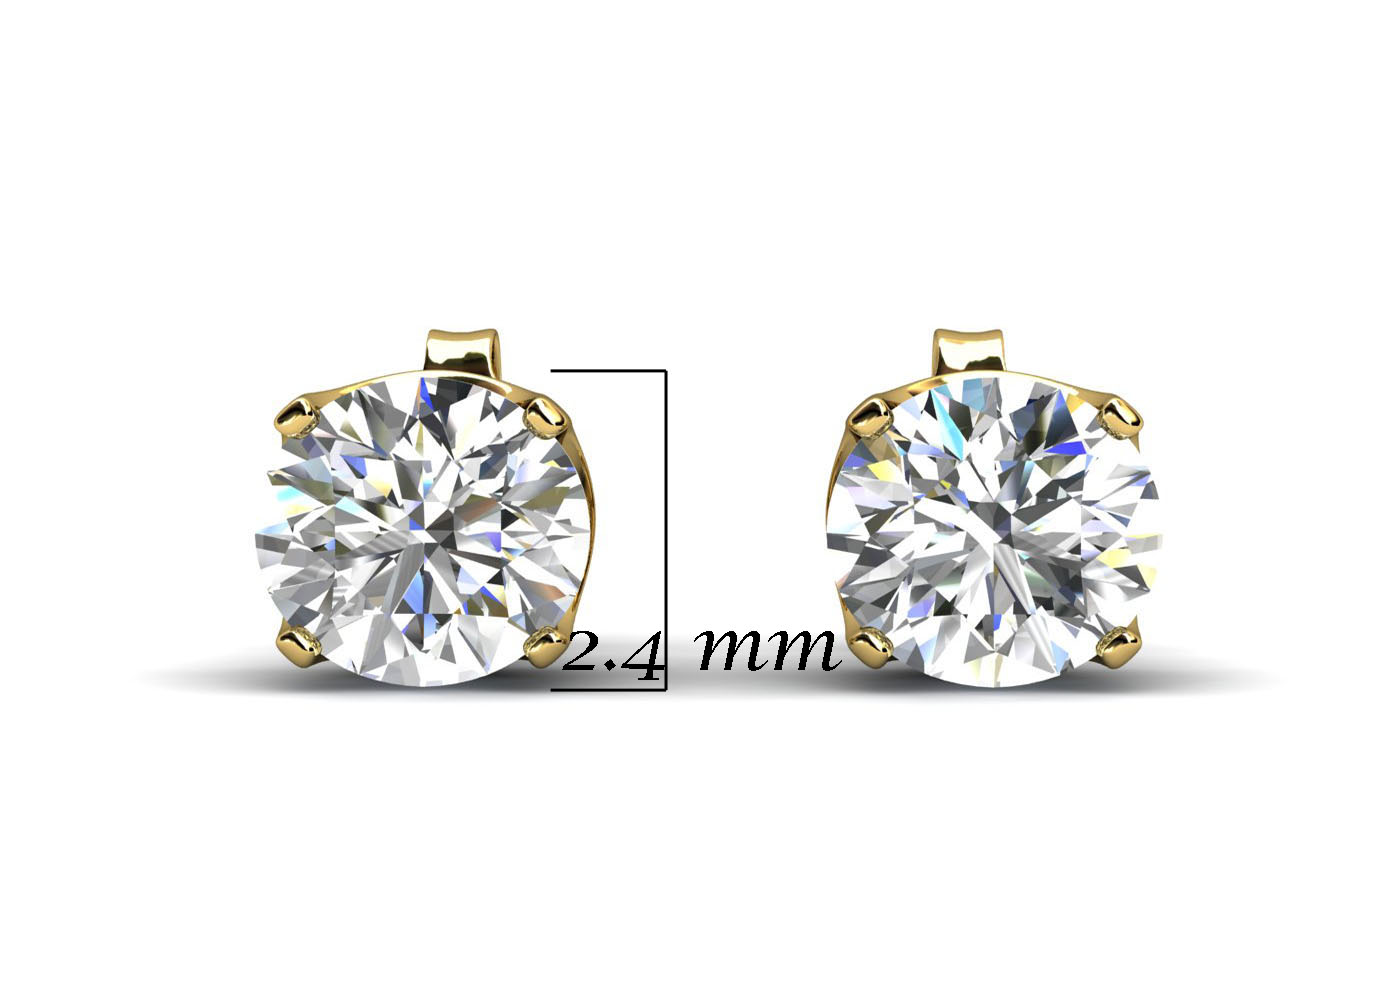 Lot 49 - 9ct Claw Set Diamond Earrings 0.40 Carats